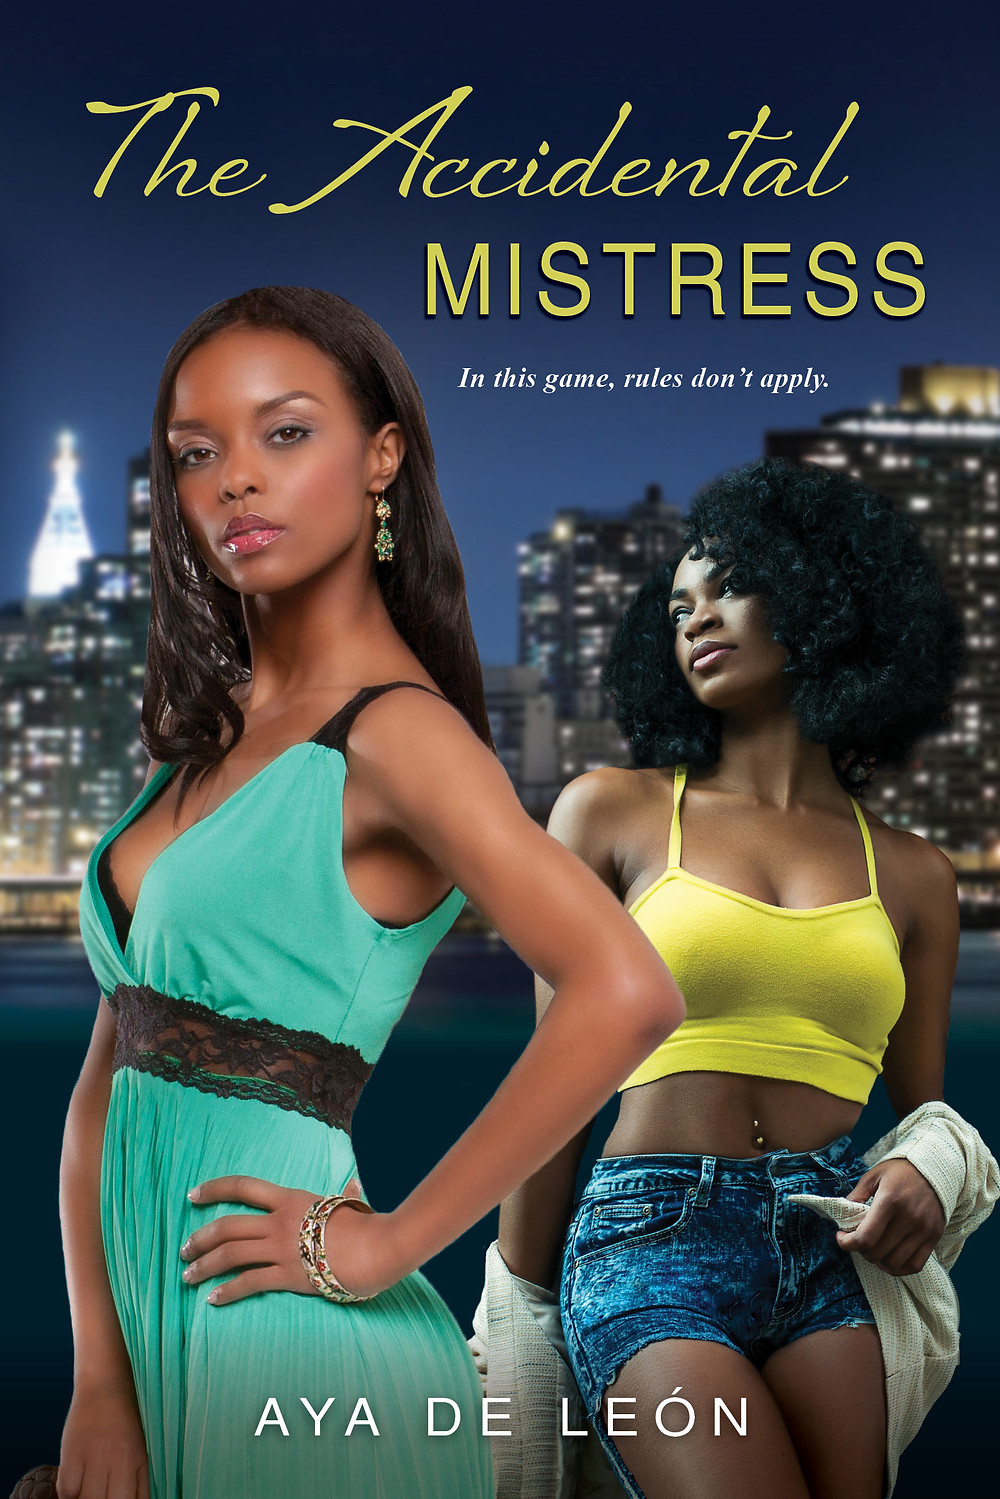 Two African American women against city skyline on book cover